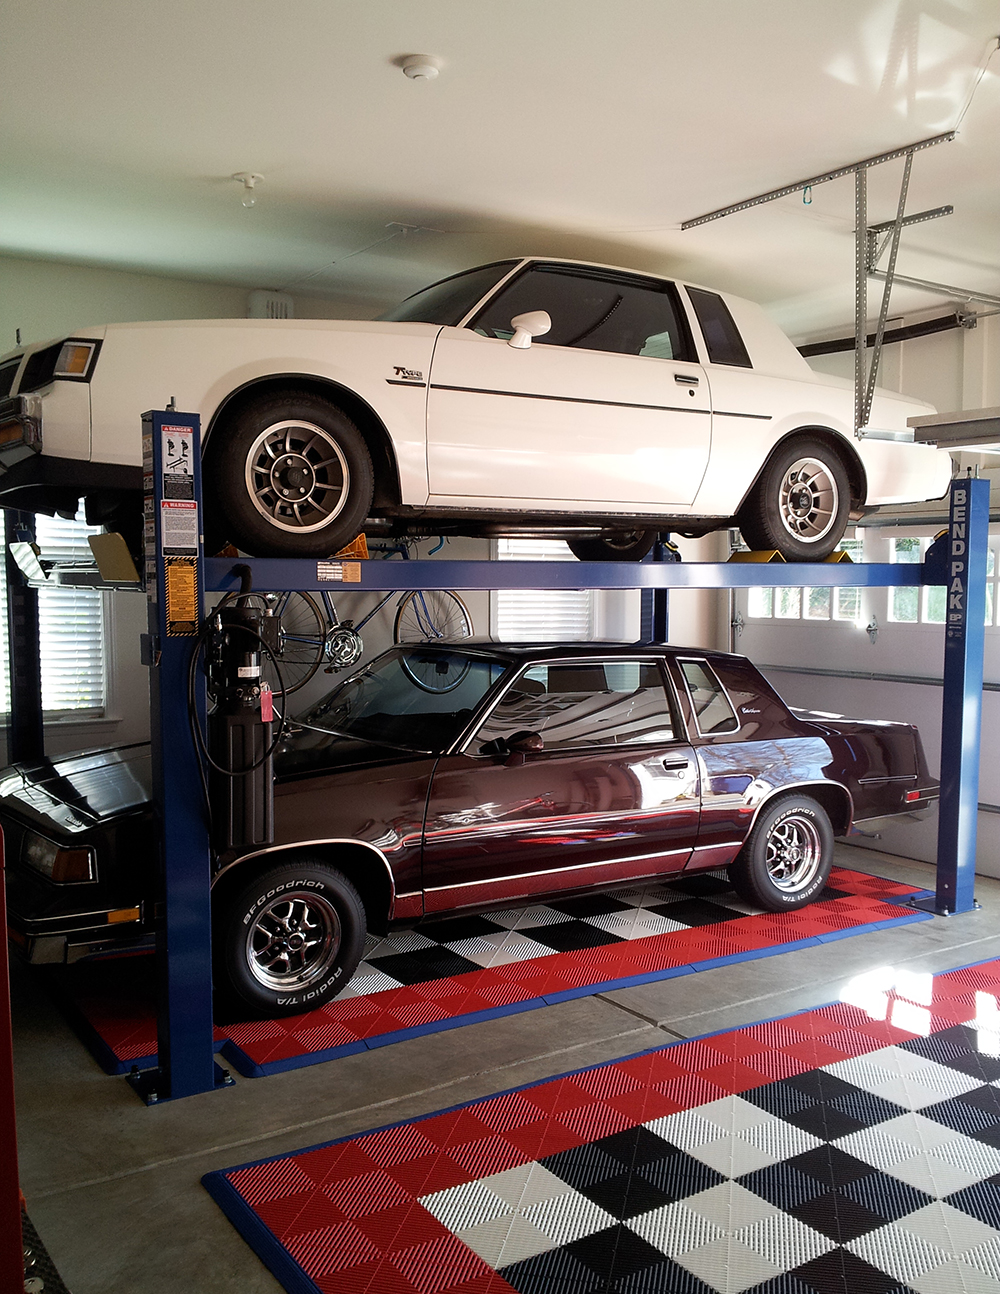 Ase deals 2 post car lifts autos post for Residential garage car lift